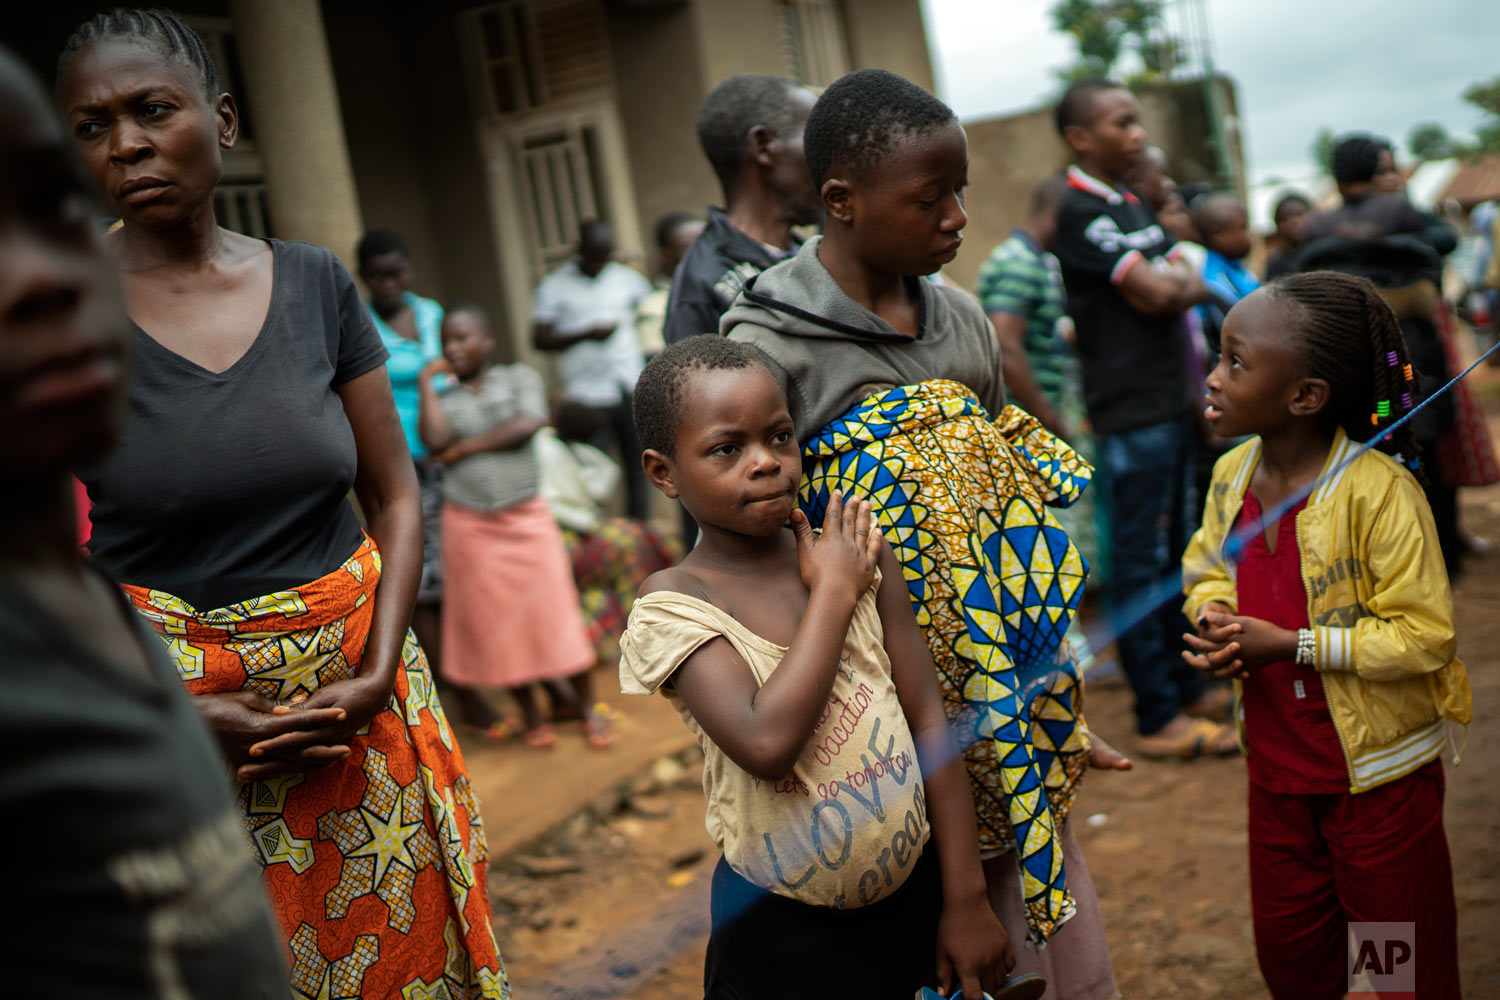 Relatives and neighbors of Mussa Kathembo an Islamic scholar who had prayed over those who were sick, and died of Ebola, wait to be vaccinated in Beni, Congo, July 13, 2019. (AP Photo/Jerome Delay)